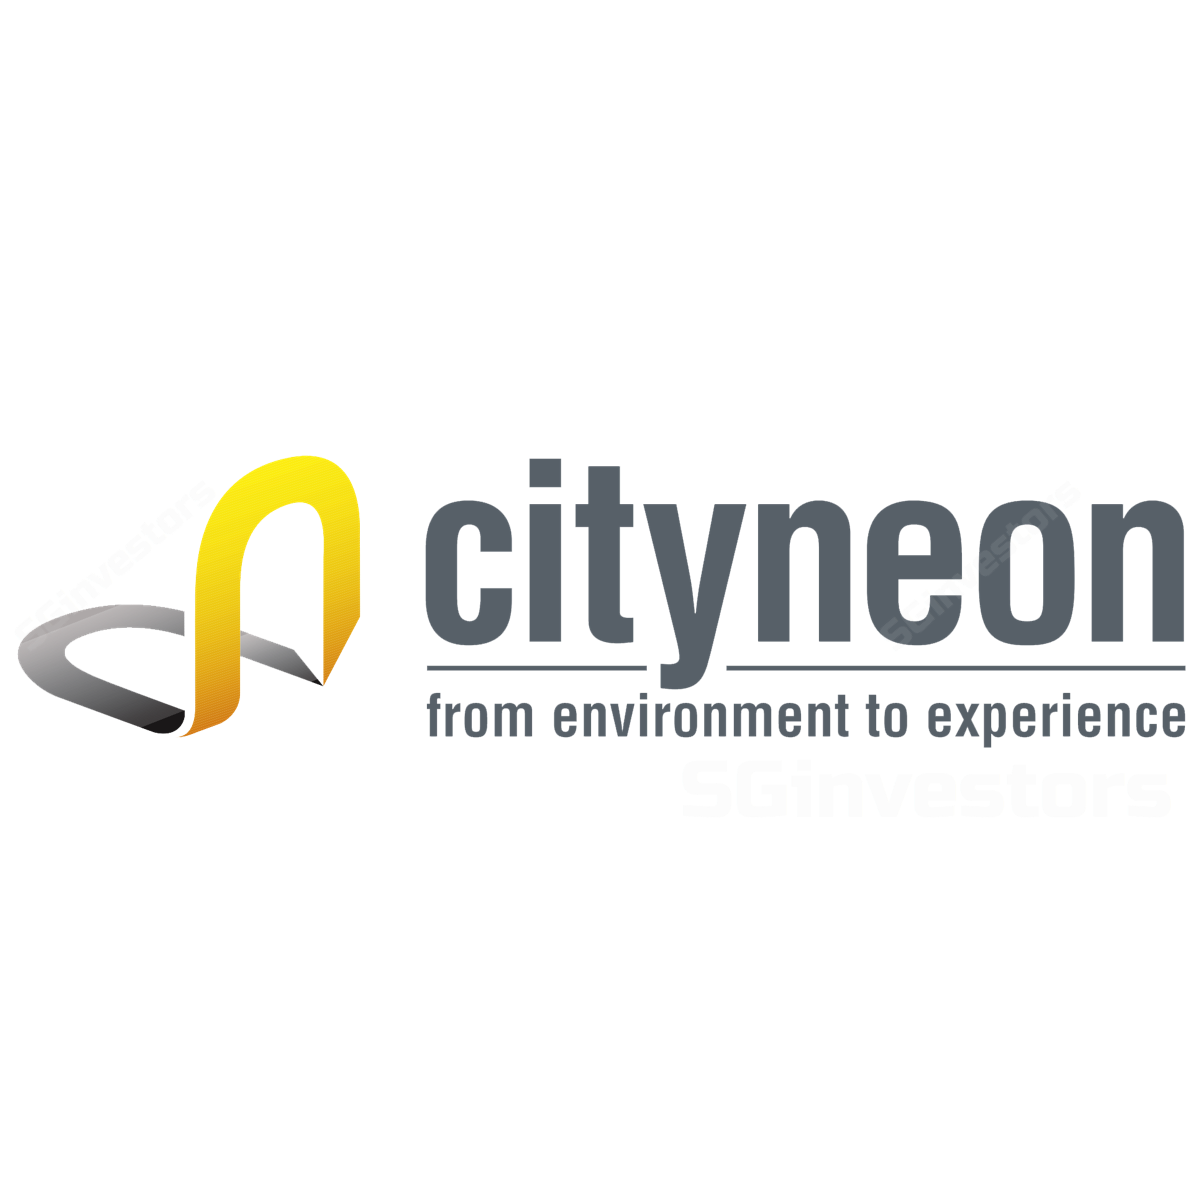 Cityneon Holdings - CIMB Research 2017-02-23: Smashing good full-year results